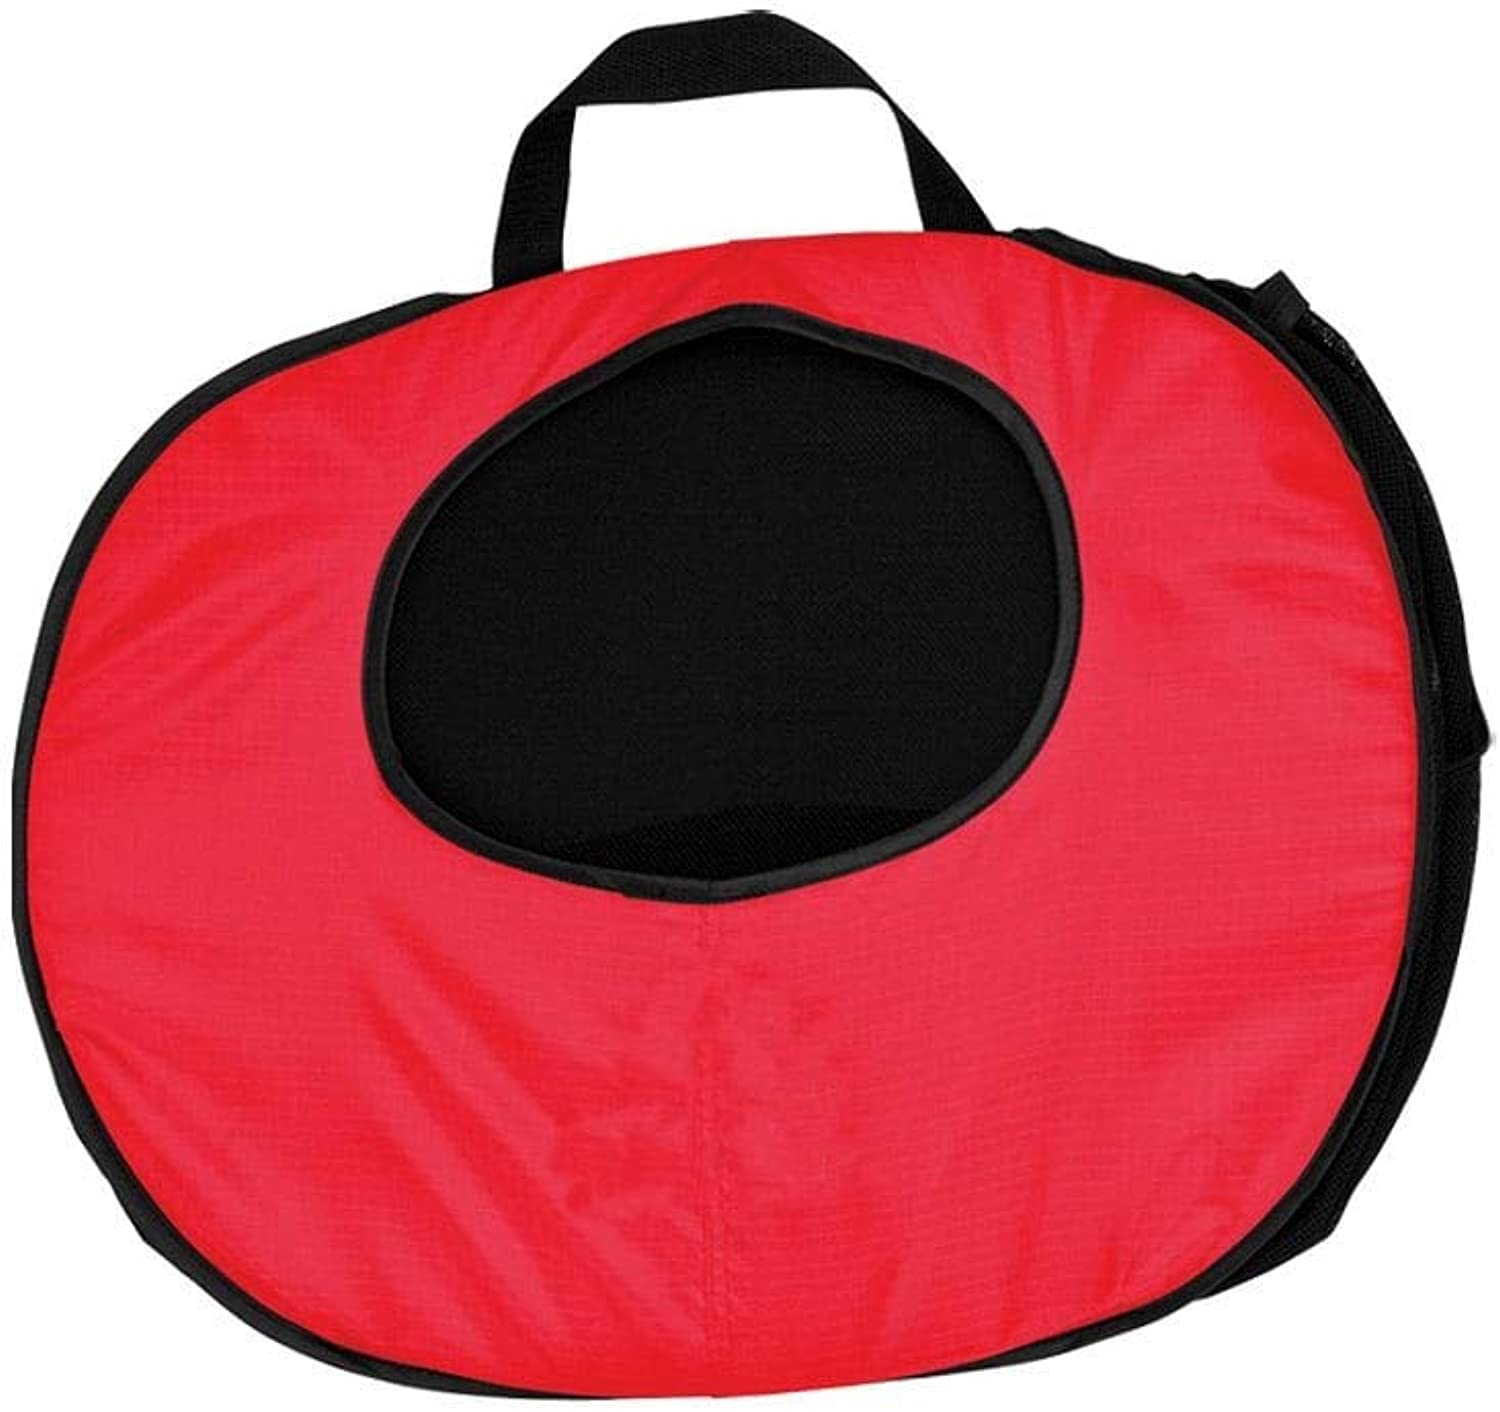 Collapsible Pet Carrier (Red) by Superdeals Store